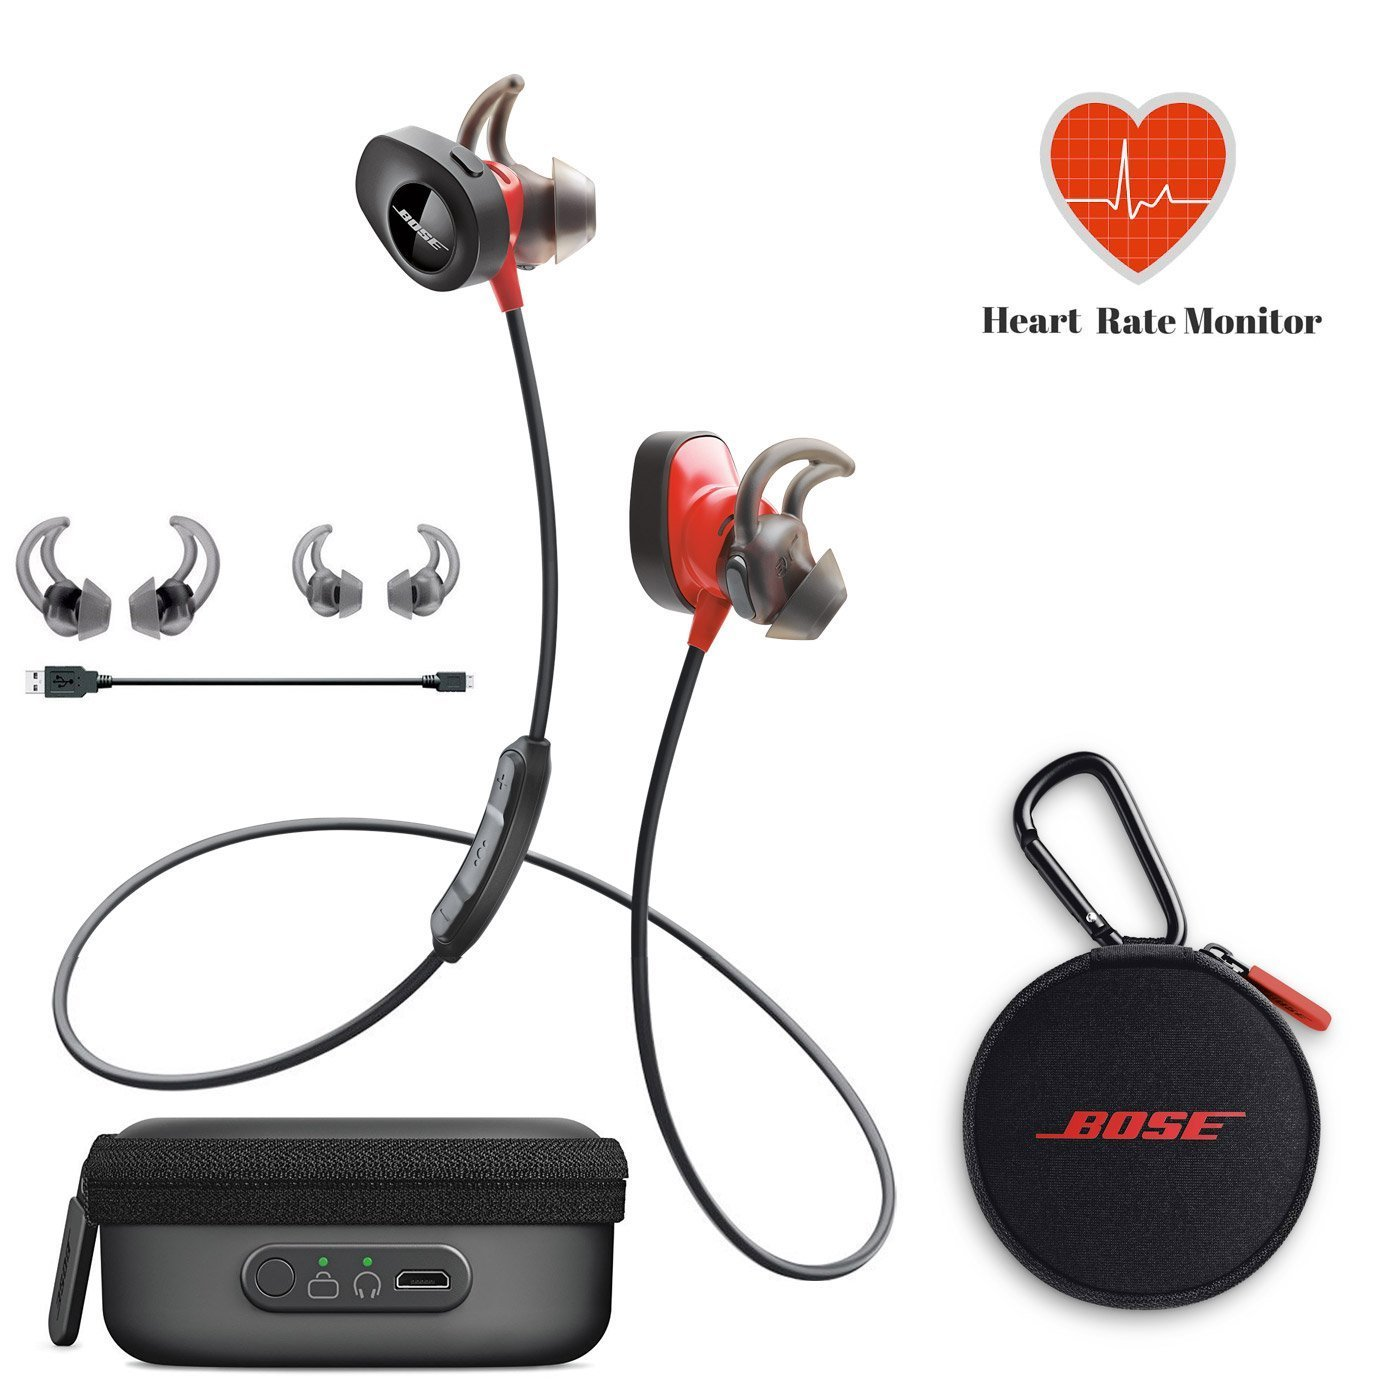 Bose SoundSport Pulse | Sport Heart Rate Bluetooth Wireless In-Ear Headphones - Red & Charging Case - Bundle